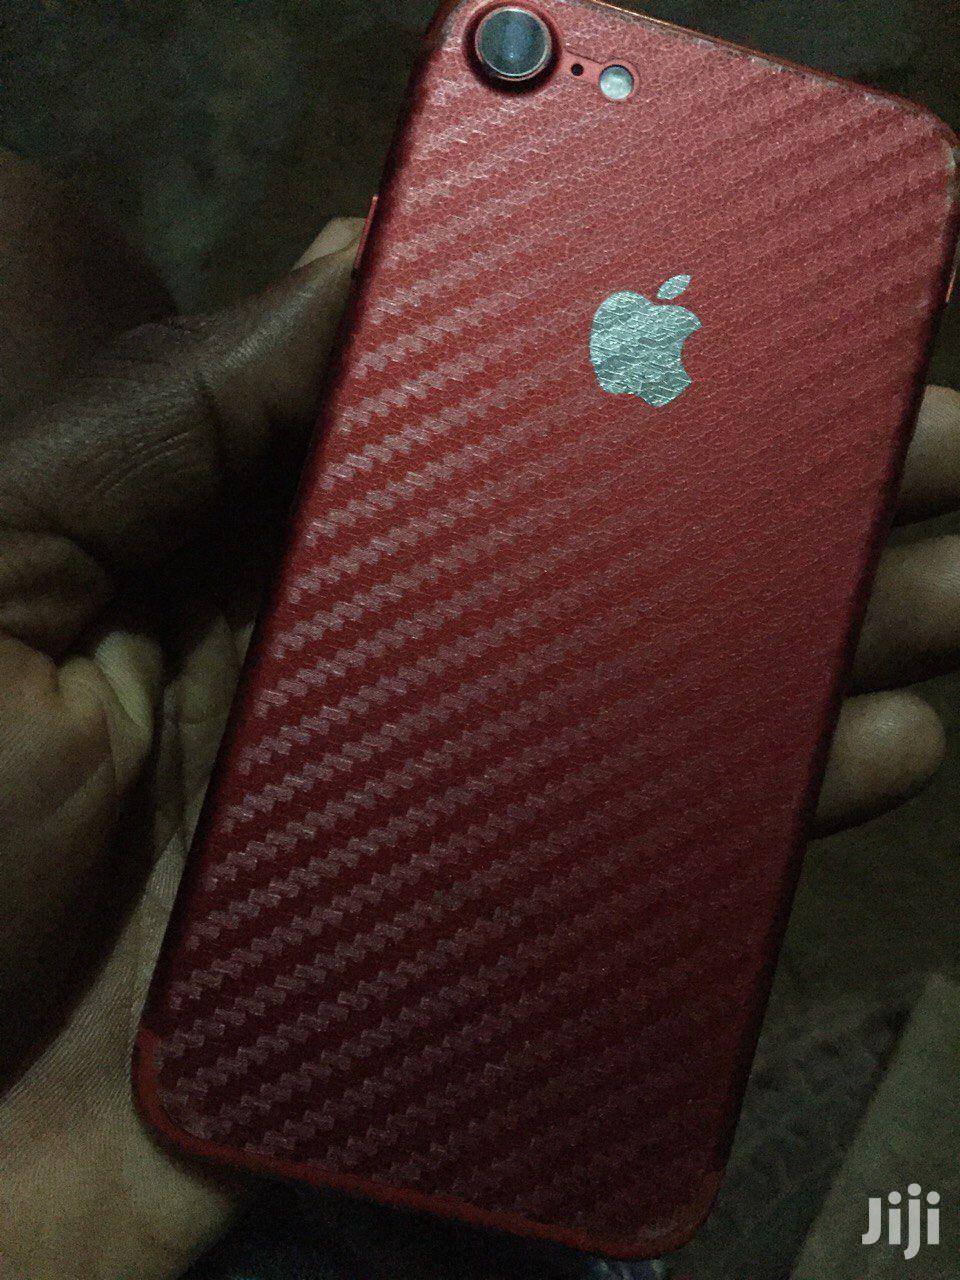 Apple iPhone 6 16 GB Gold | Mobile Phones for sale in Darkuman, Greater Accra, Ghana